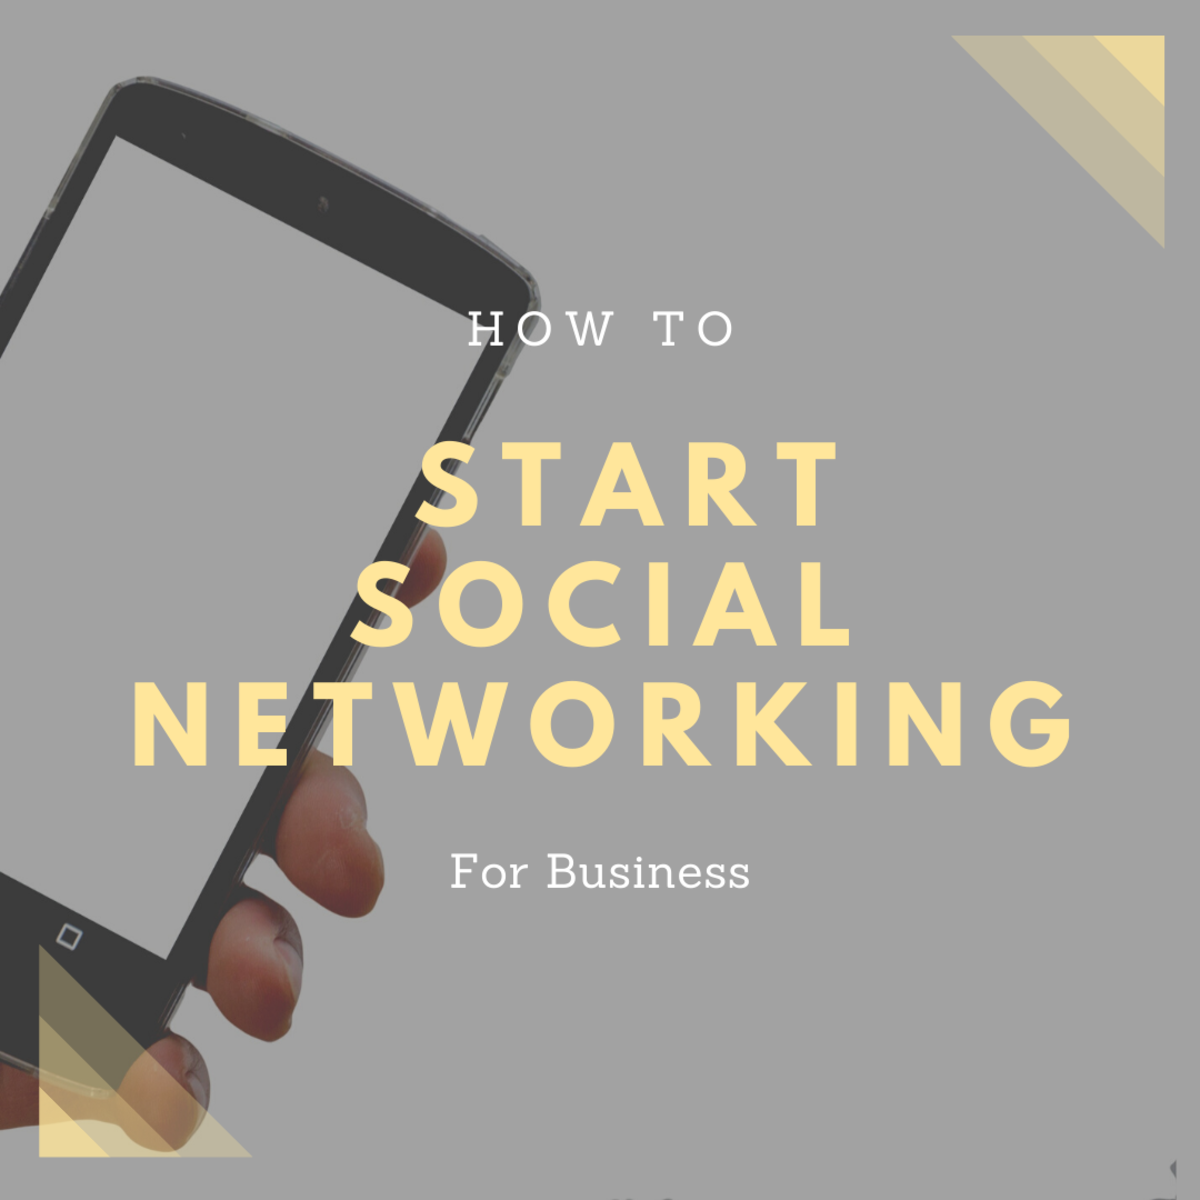 This article includes tips for businesses to get started on social media.